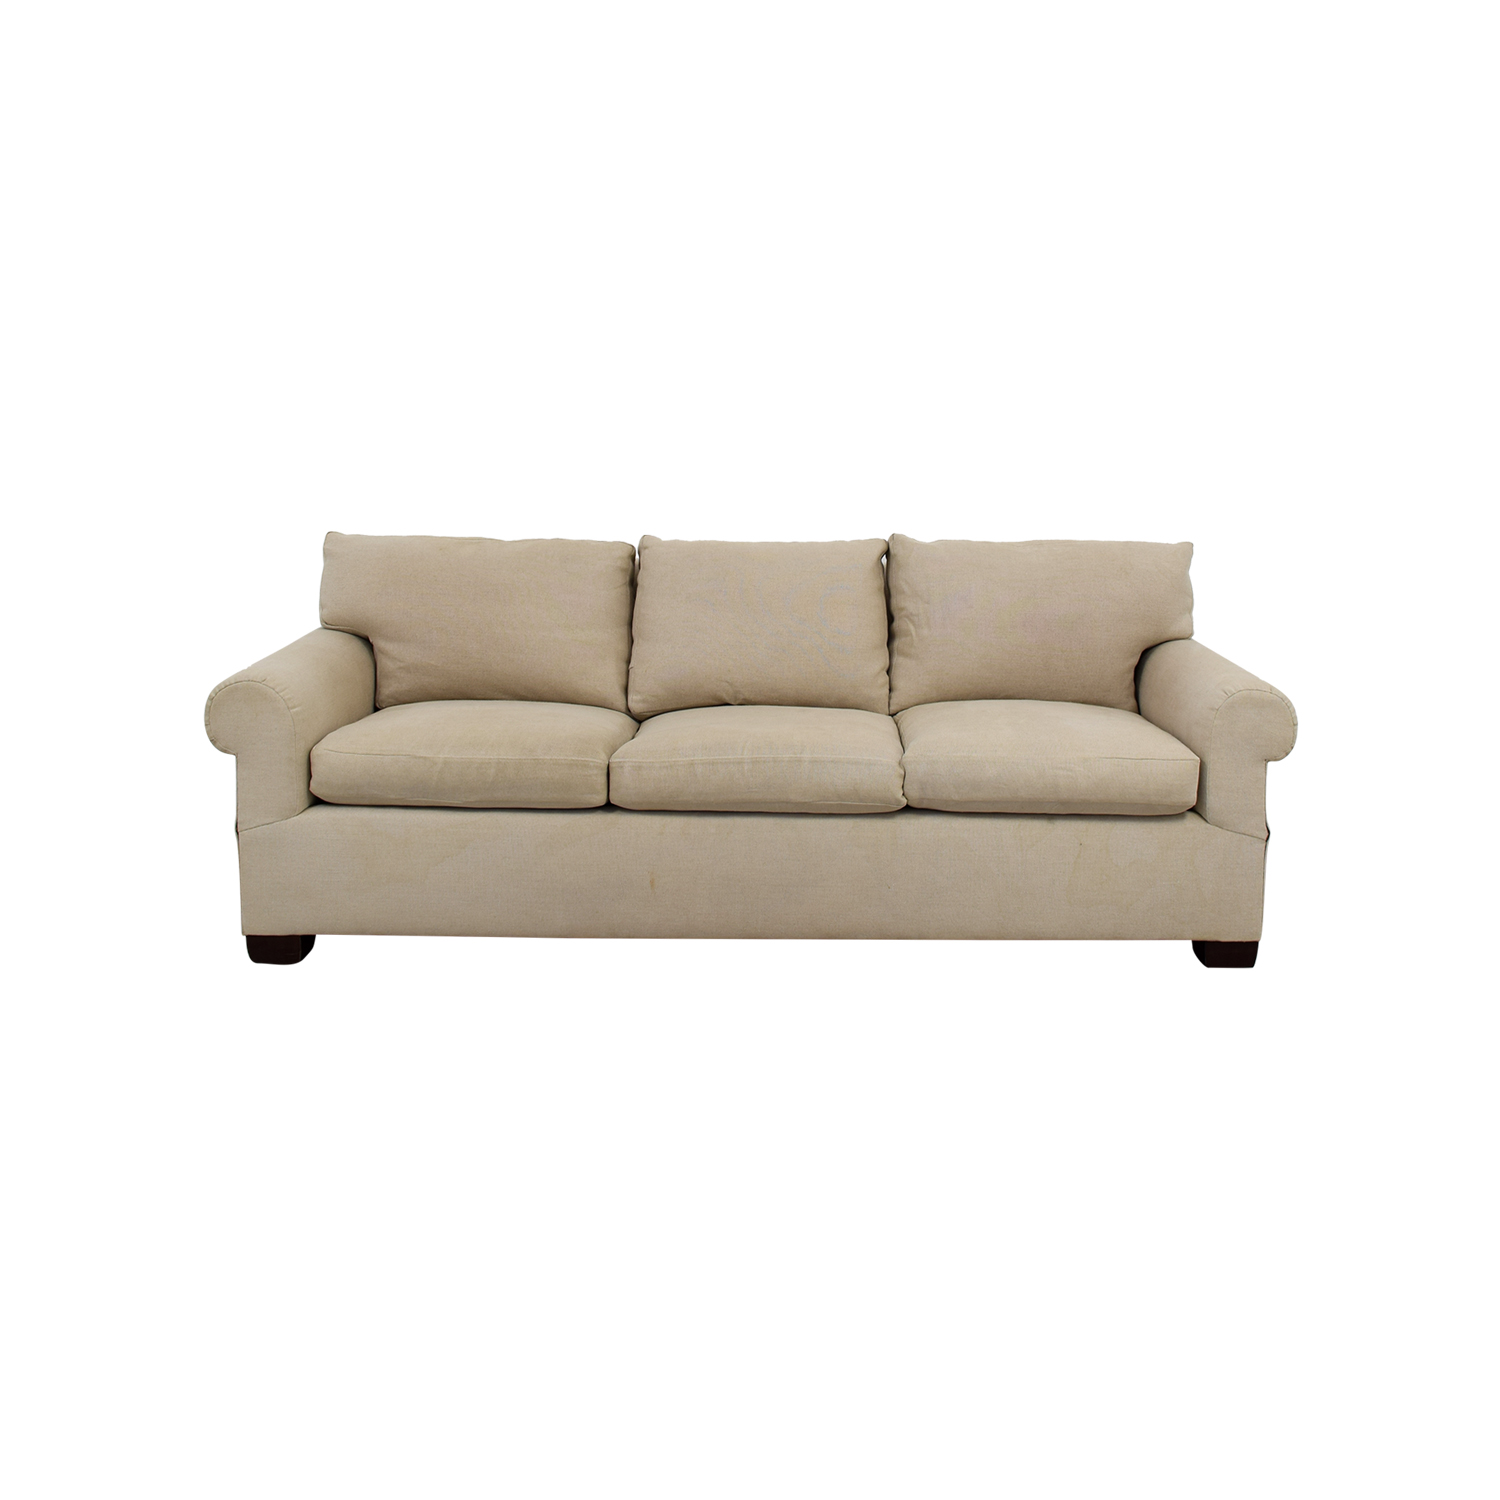 Charmant Buy Carlyle Three Cushion Sofa Carlyle ...